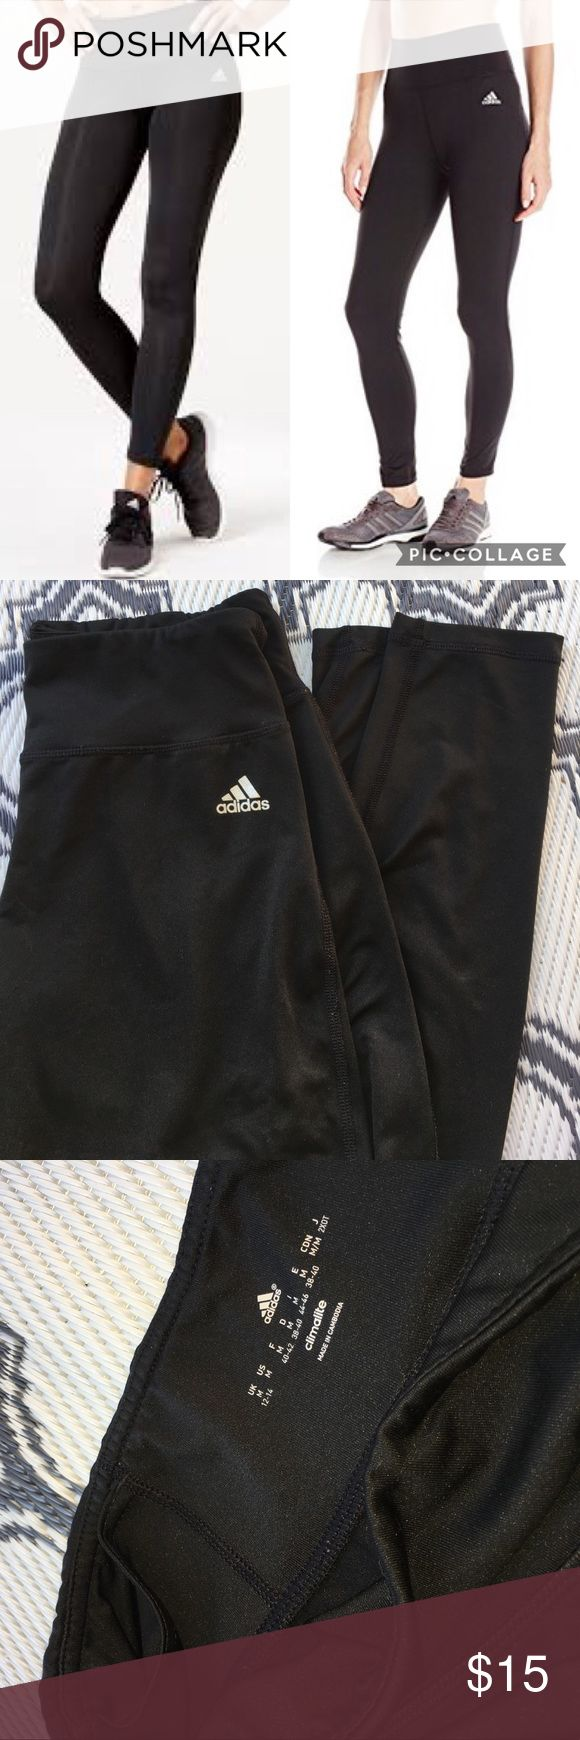 Adidas Black Women's Leggings Athletic High Rise Adidas Leggings. Size medium! Black with silver adidas logo. High rise with wide waistband for a smooth supportive fit. Climalite fabric which is great for staying dry. A key pocket is tucked in front. Like new. No holes or stains. Check out my other adidas merch for a bundle discount! adidas Pants Leggings